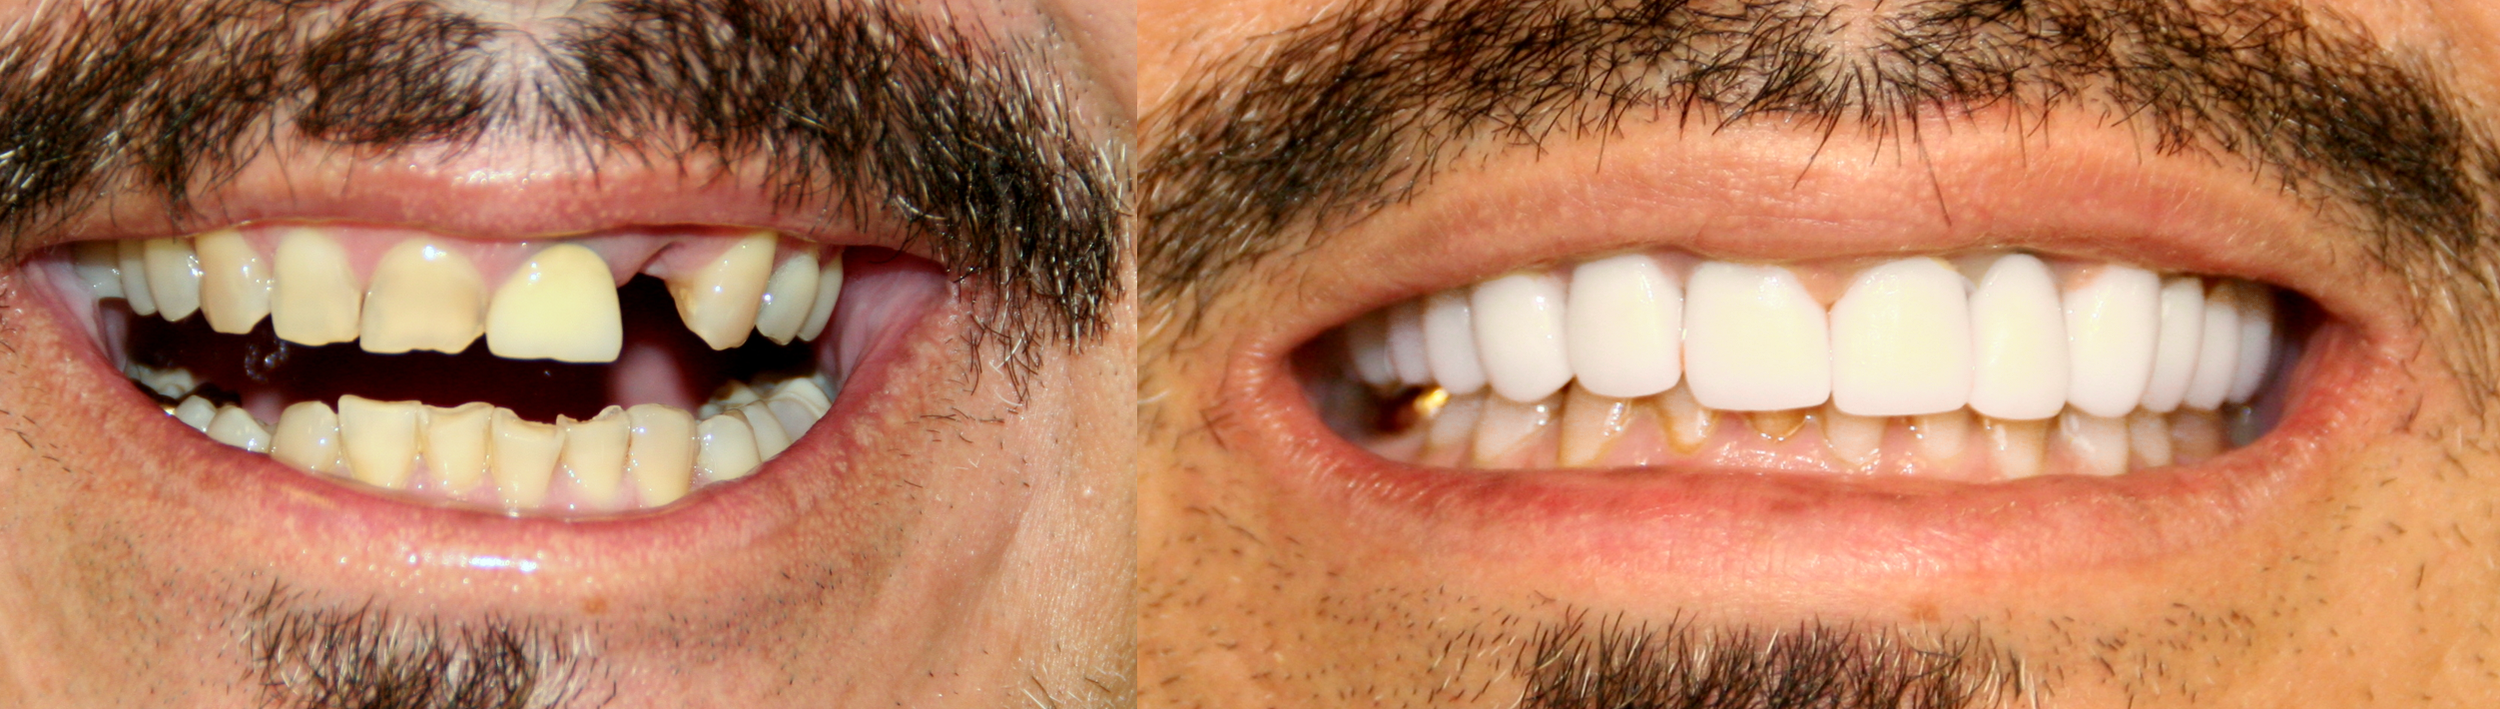 Dr. Ingram restored this patient's upper arch after years of wear and tear.